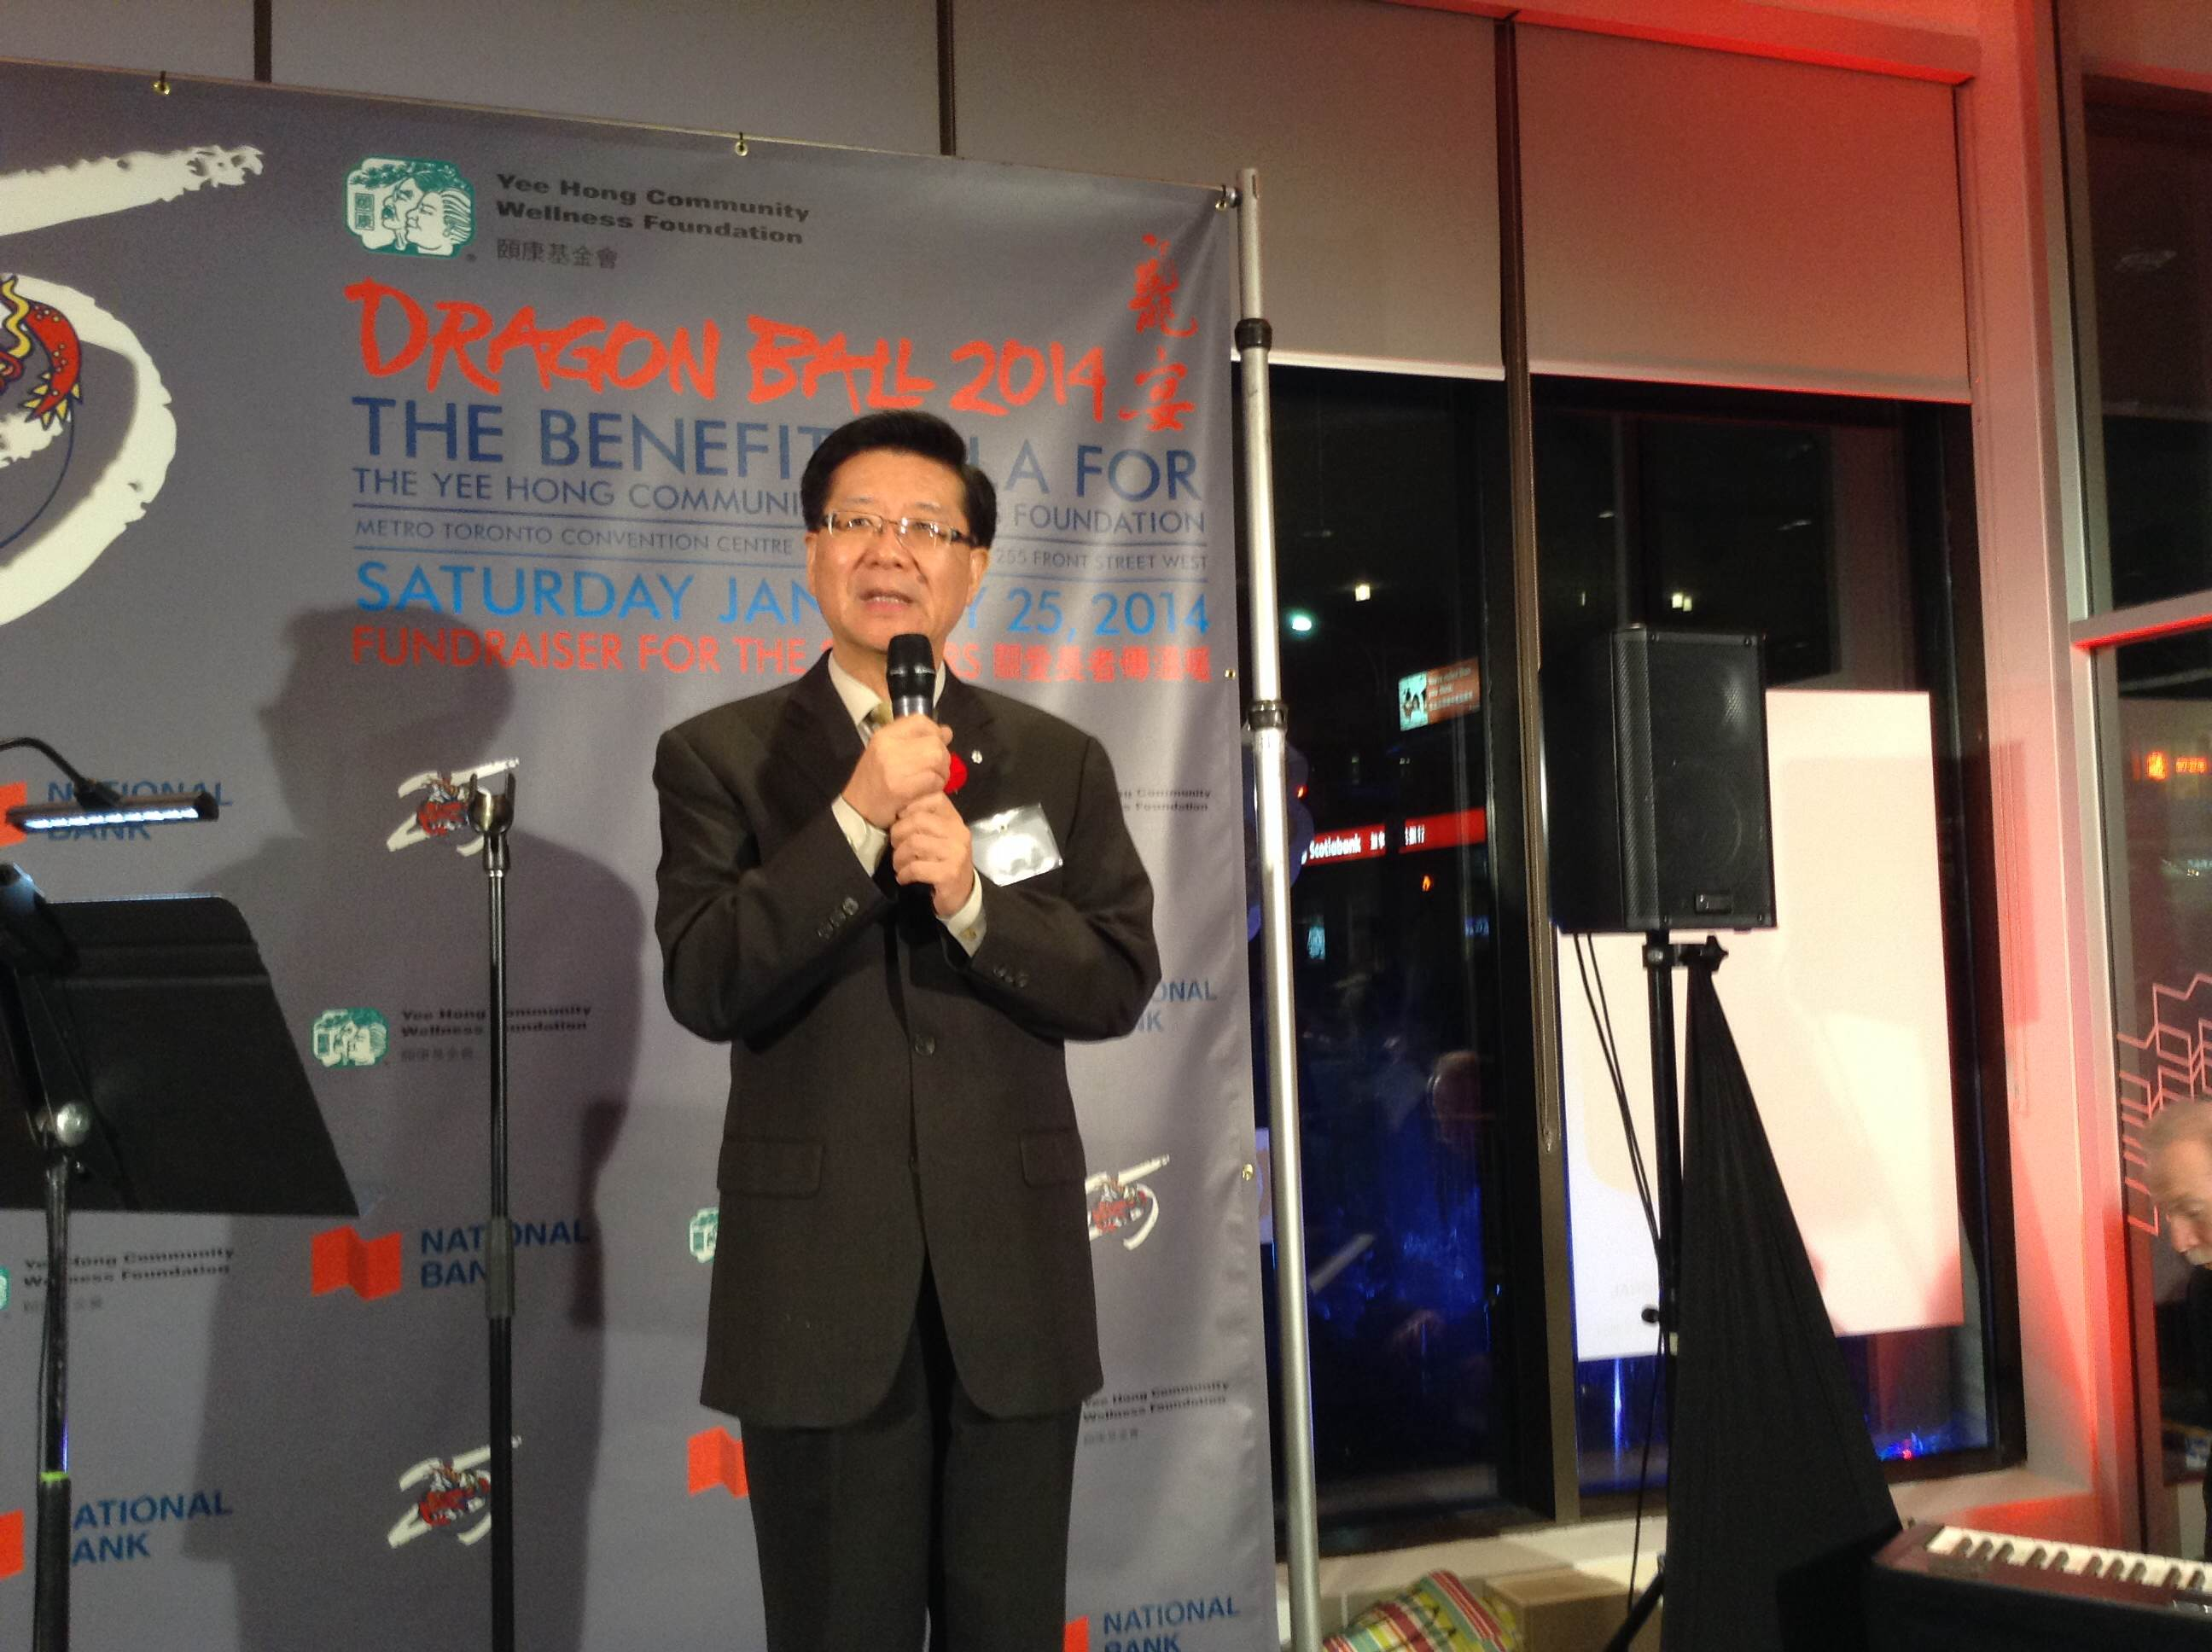 Dr. Joseph Wong at the Dragon Ball Gala's grand opening last night. The event will be held on January 25th, 2014.